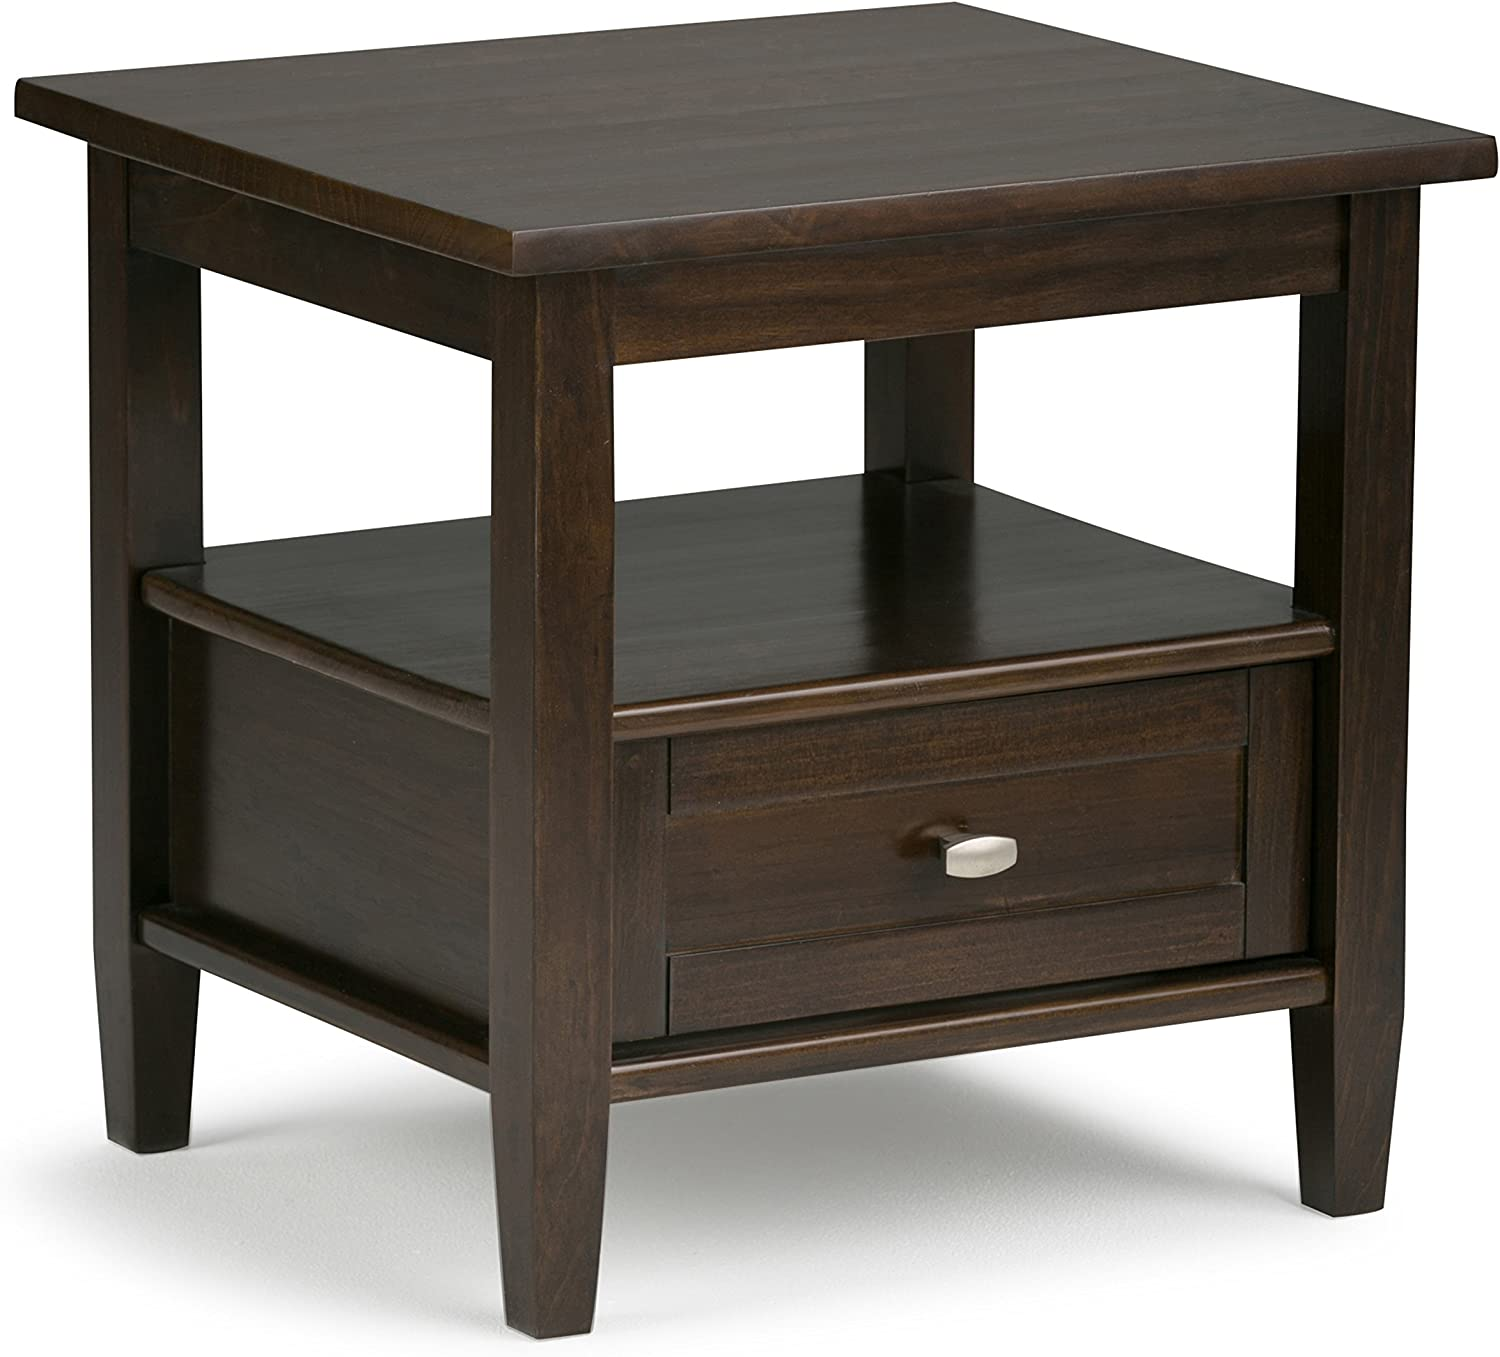 Simpli Home Warm Shaker SOLID WOOD 20 inch wide Rectangle Rustic Contemporary End Side Table in Tobacco Brown with Storage, 1 Drawer and 1 Shelf, for the Living Room and Bedroom: Kitchen & Dining